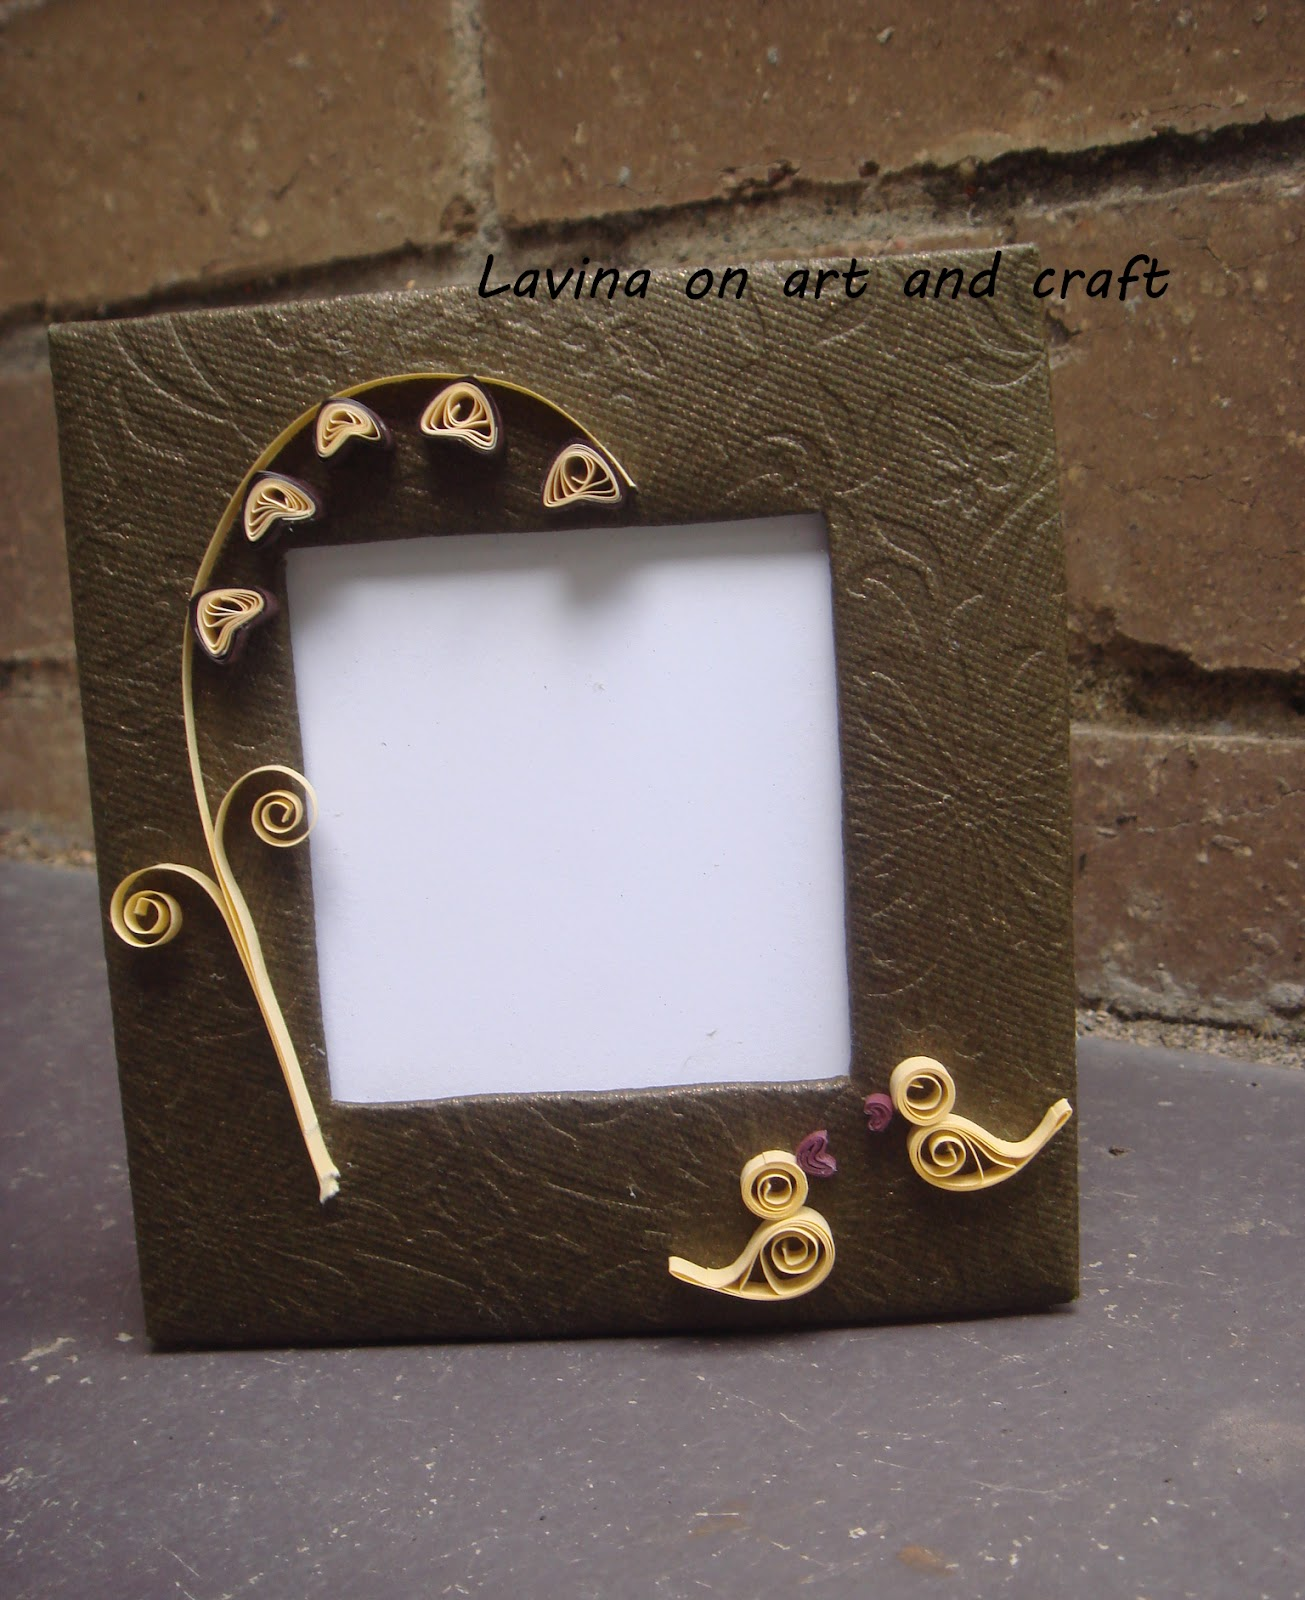 Life s little treasures Recycled DIY photo frame